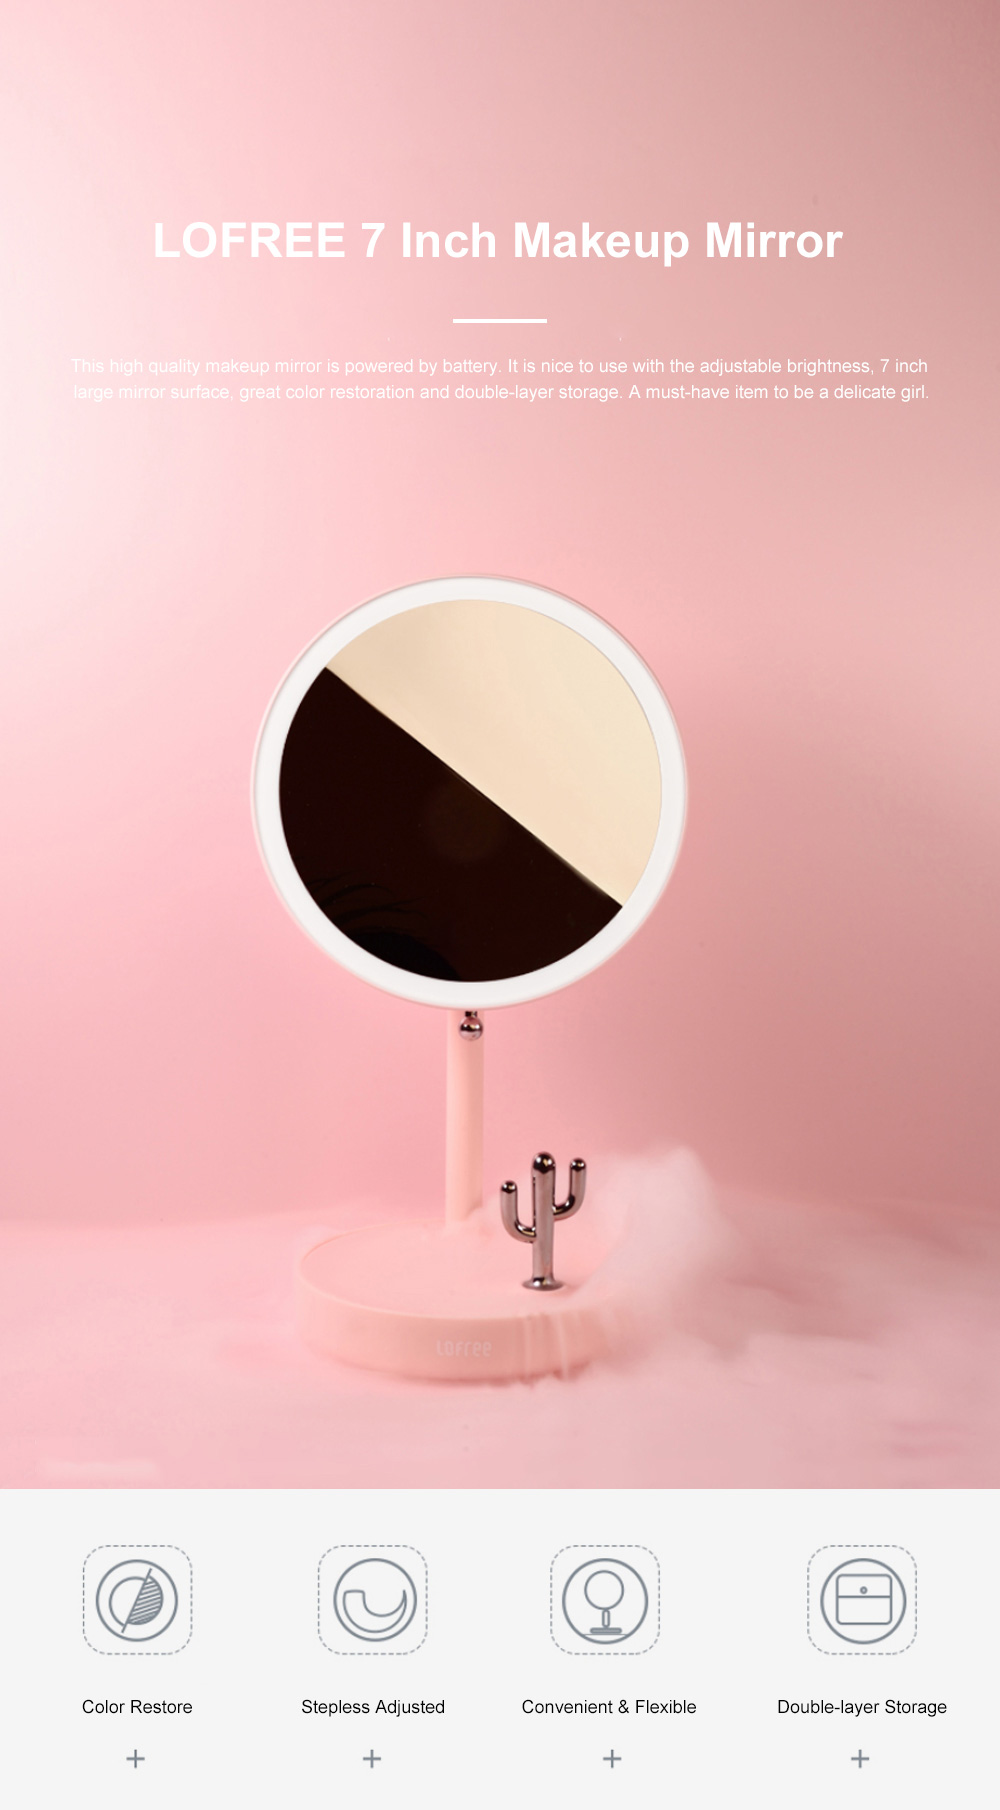 LOFREE 7 Inch Makeup Mirror Rechargeable Vanity Mirror with Adjustable Brightness Double-layer Storage and Rotation Switch 0